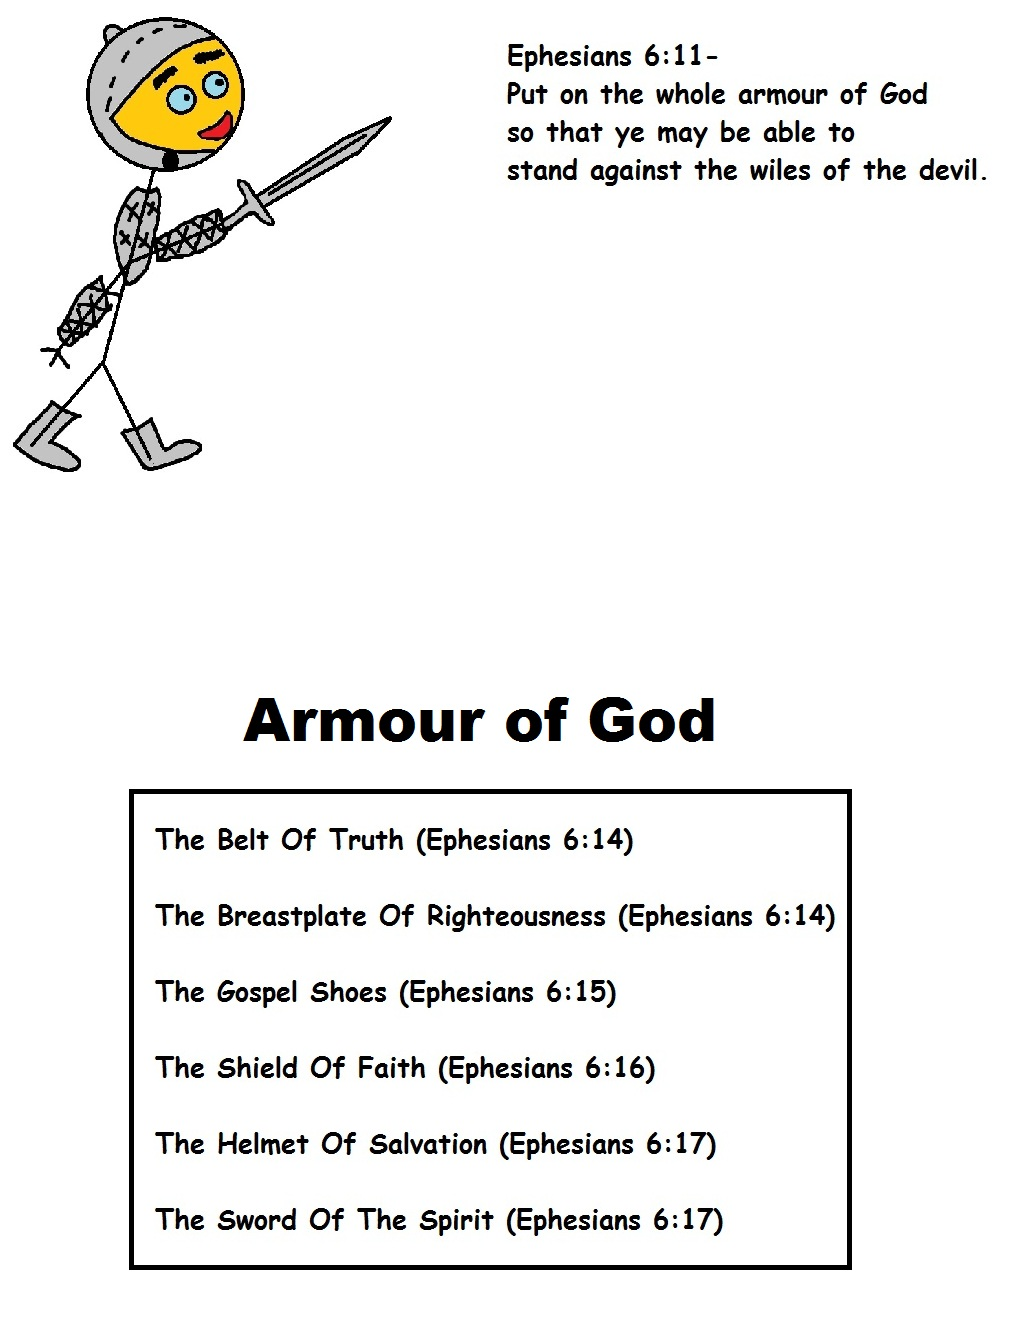 picture regarding Armor of God Printable titled Armor Of God